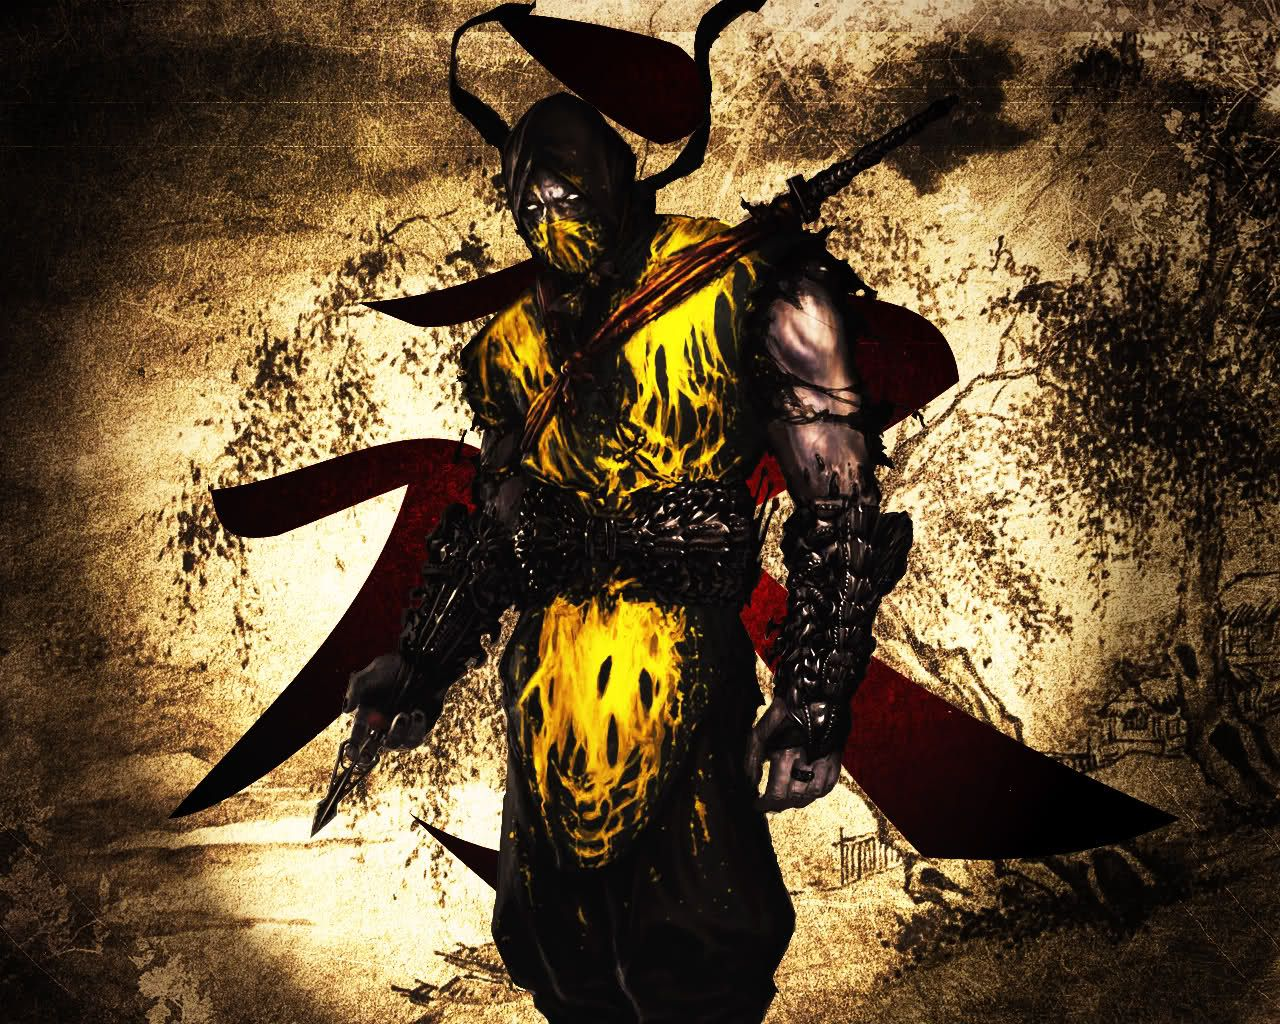 Scorpion The Video Gamer Mortal Kombat Scorpion Mortal Kombat